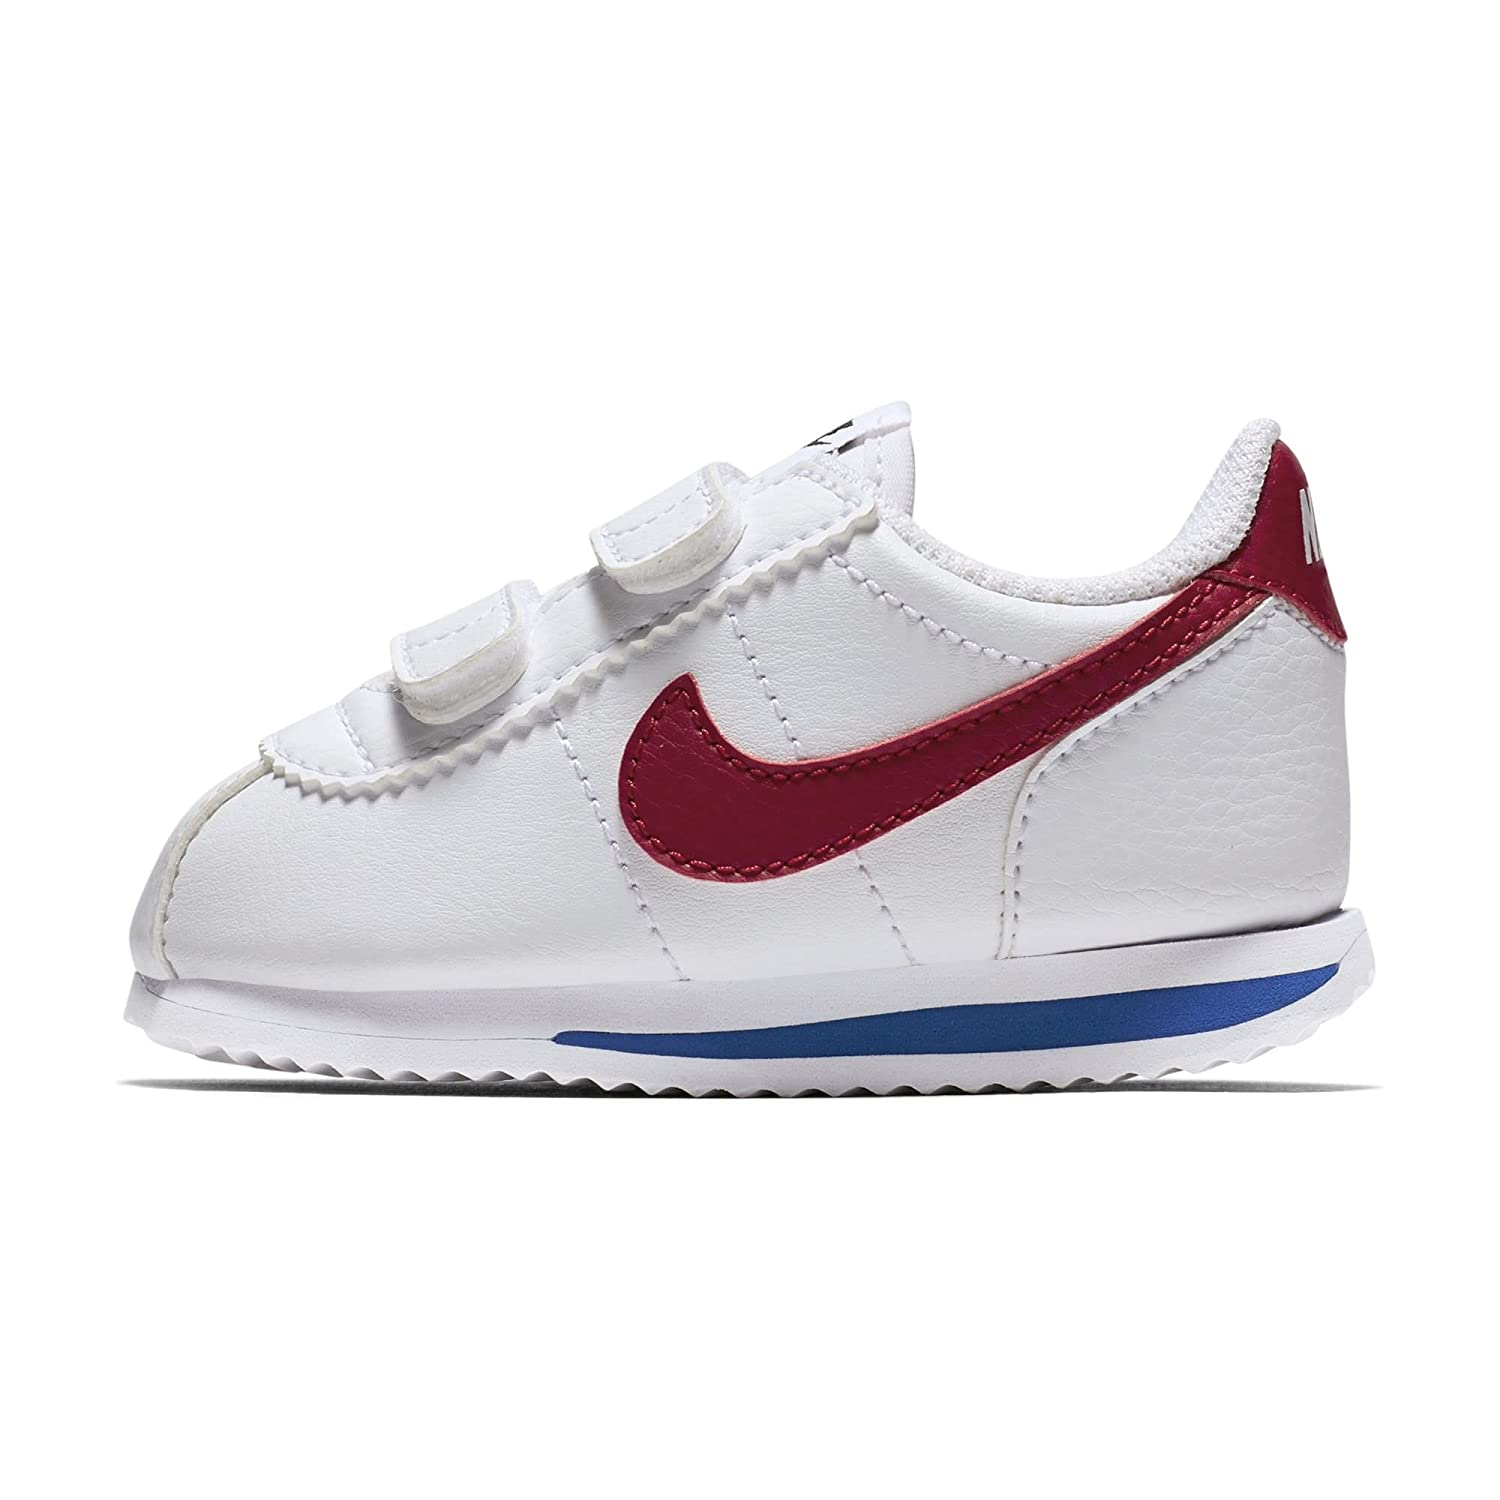 Nike Cortez Basic sl (TDV) - Sneakers, Child: Amazon.co.uk: Sports &  Outdoors